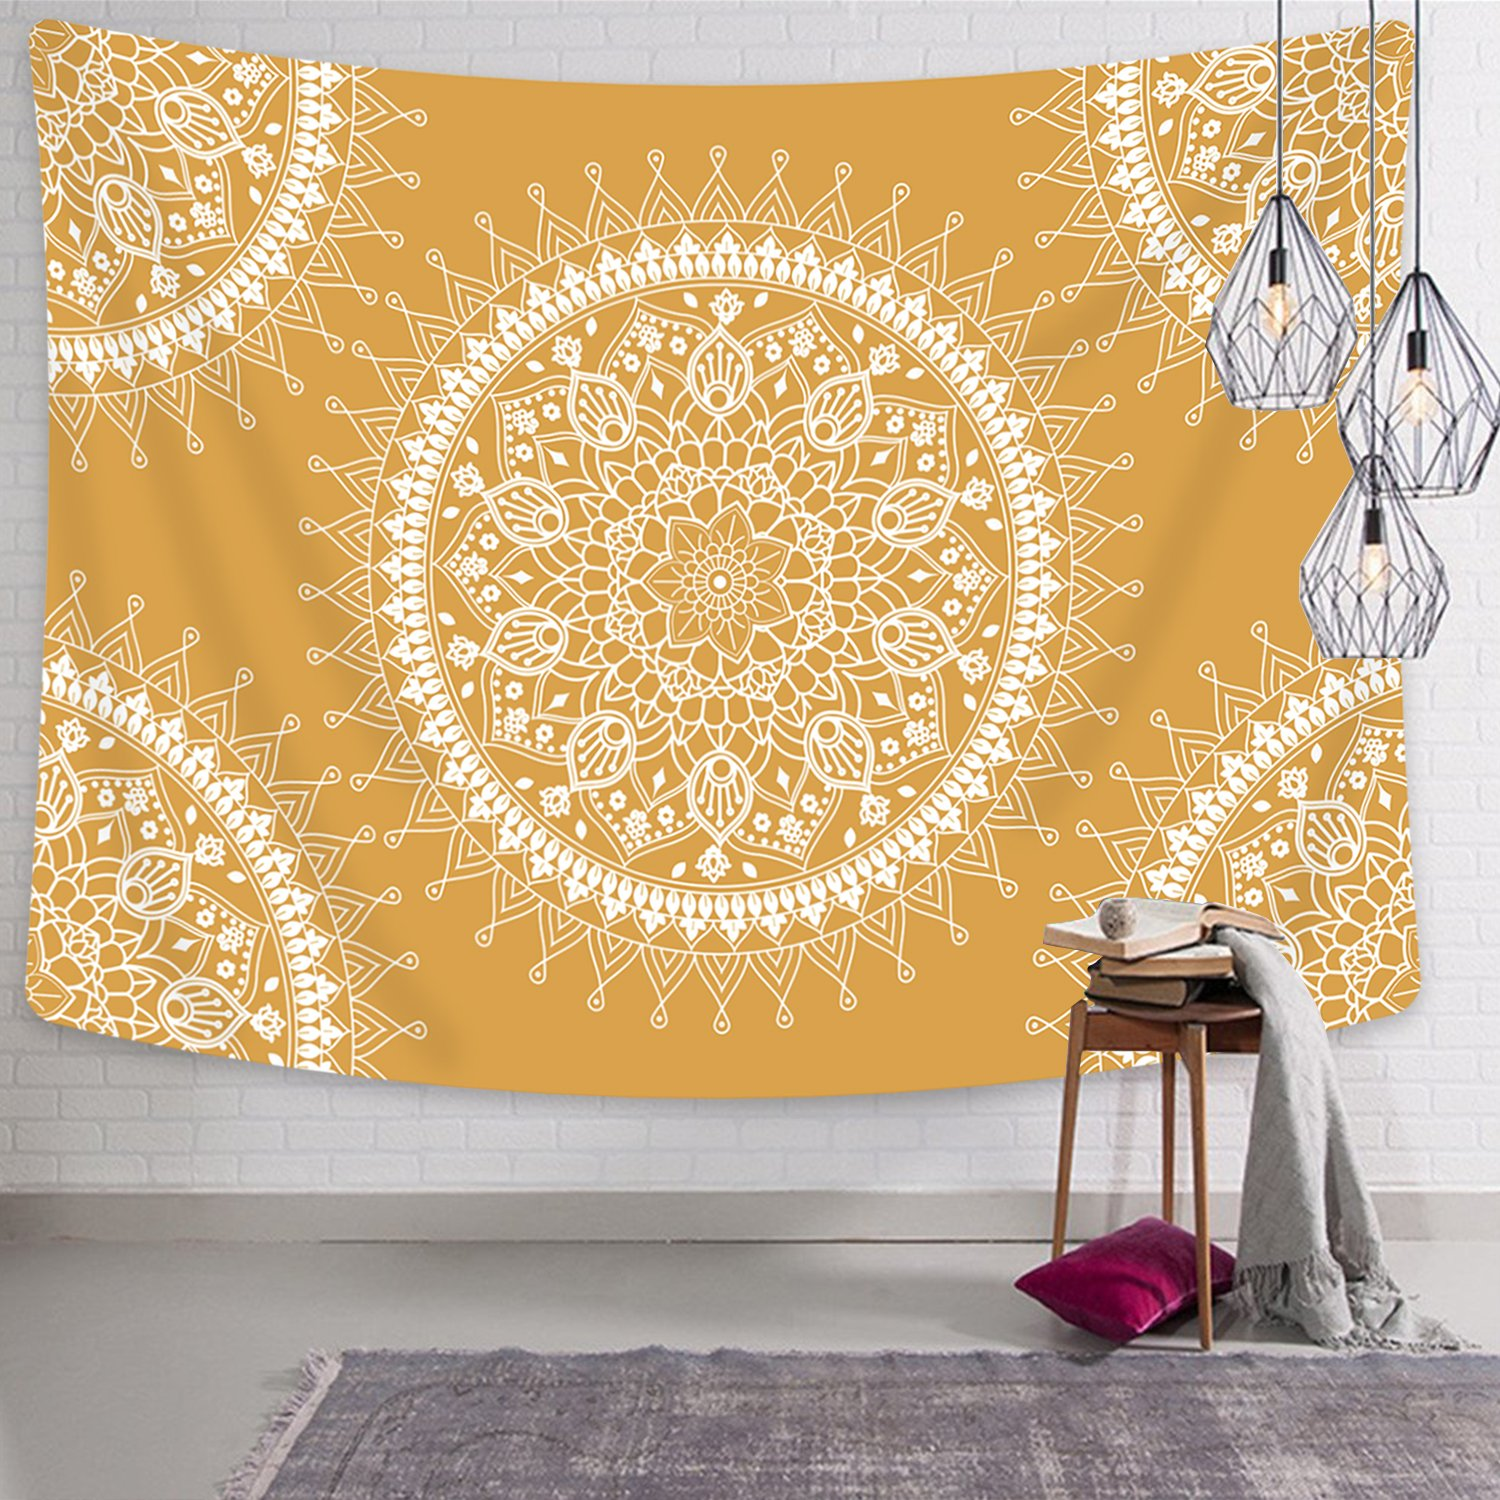 Tapestry Mandala Hippie Bohemian Tapestries Wall Hanging Flower Psychedelic Tapestry Wall Hanging Indian Dorm Decor for Living Room Bedroom